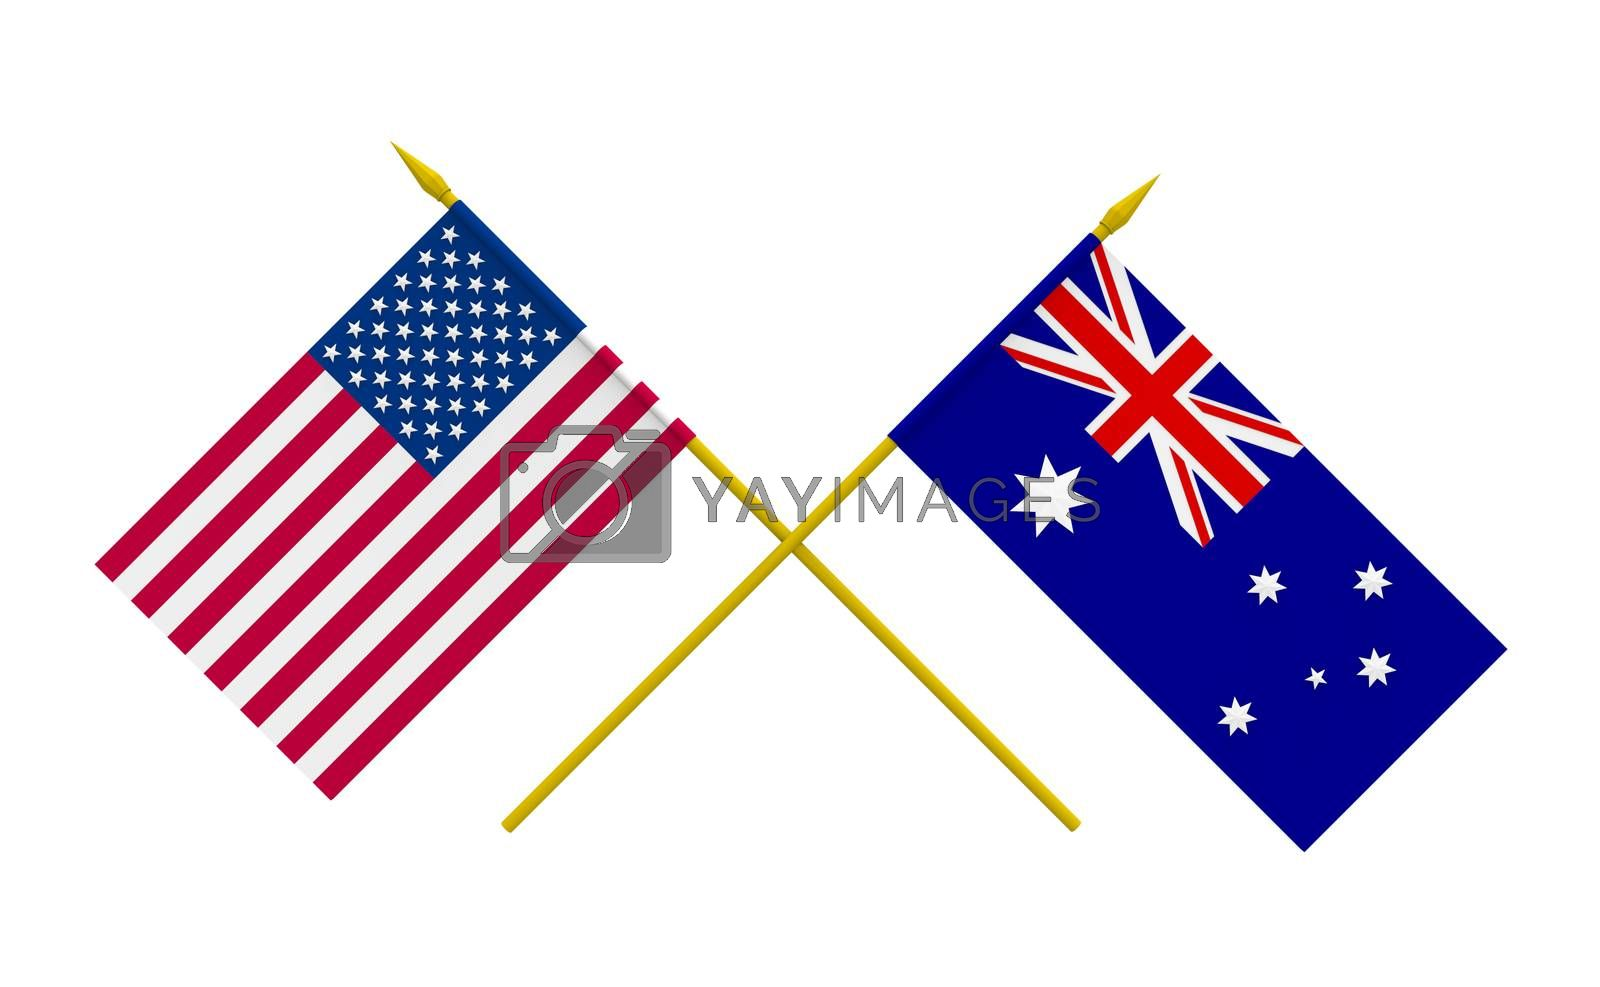 Royalty free image of Flags, Australia and USA by Boris15